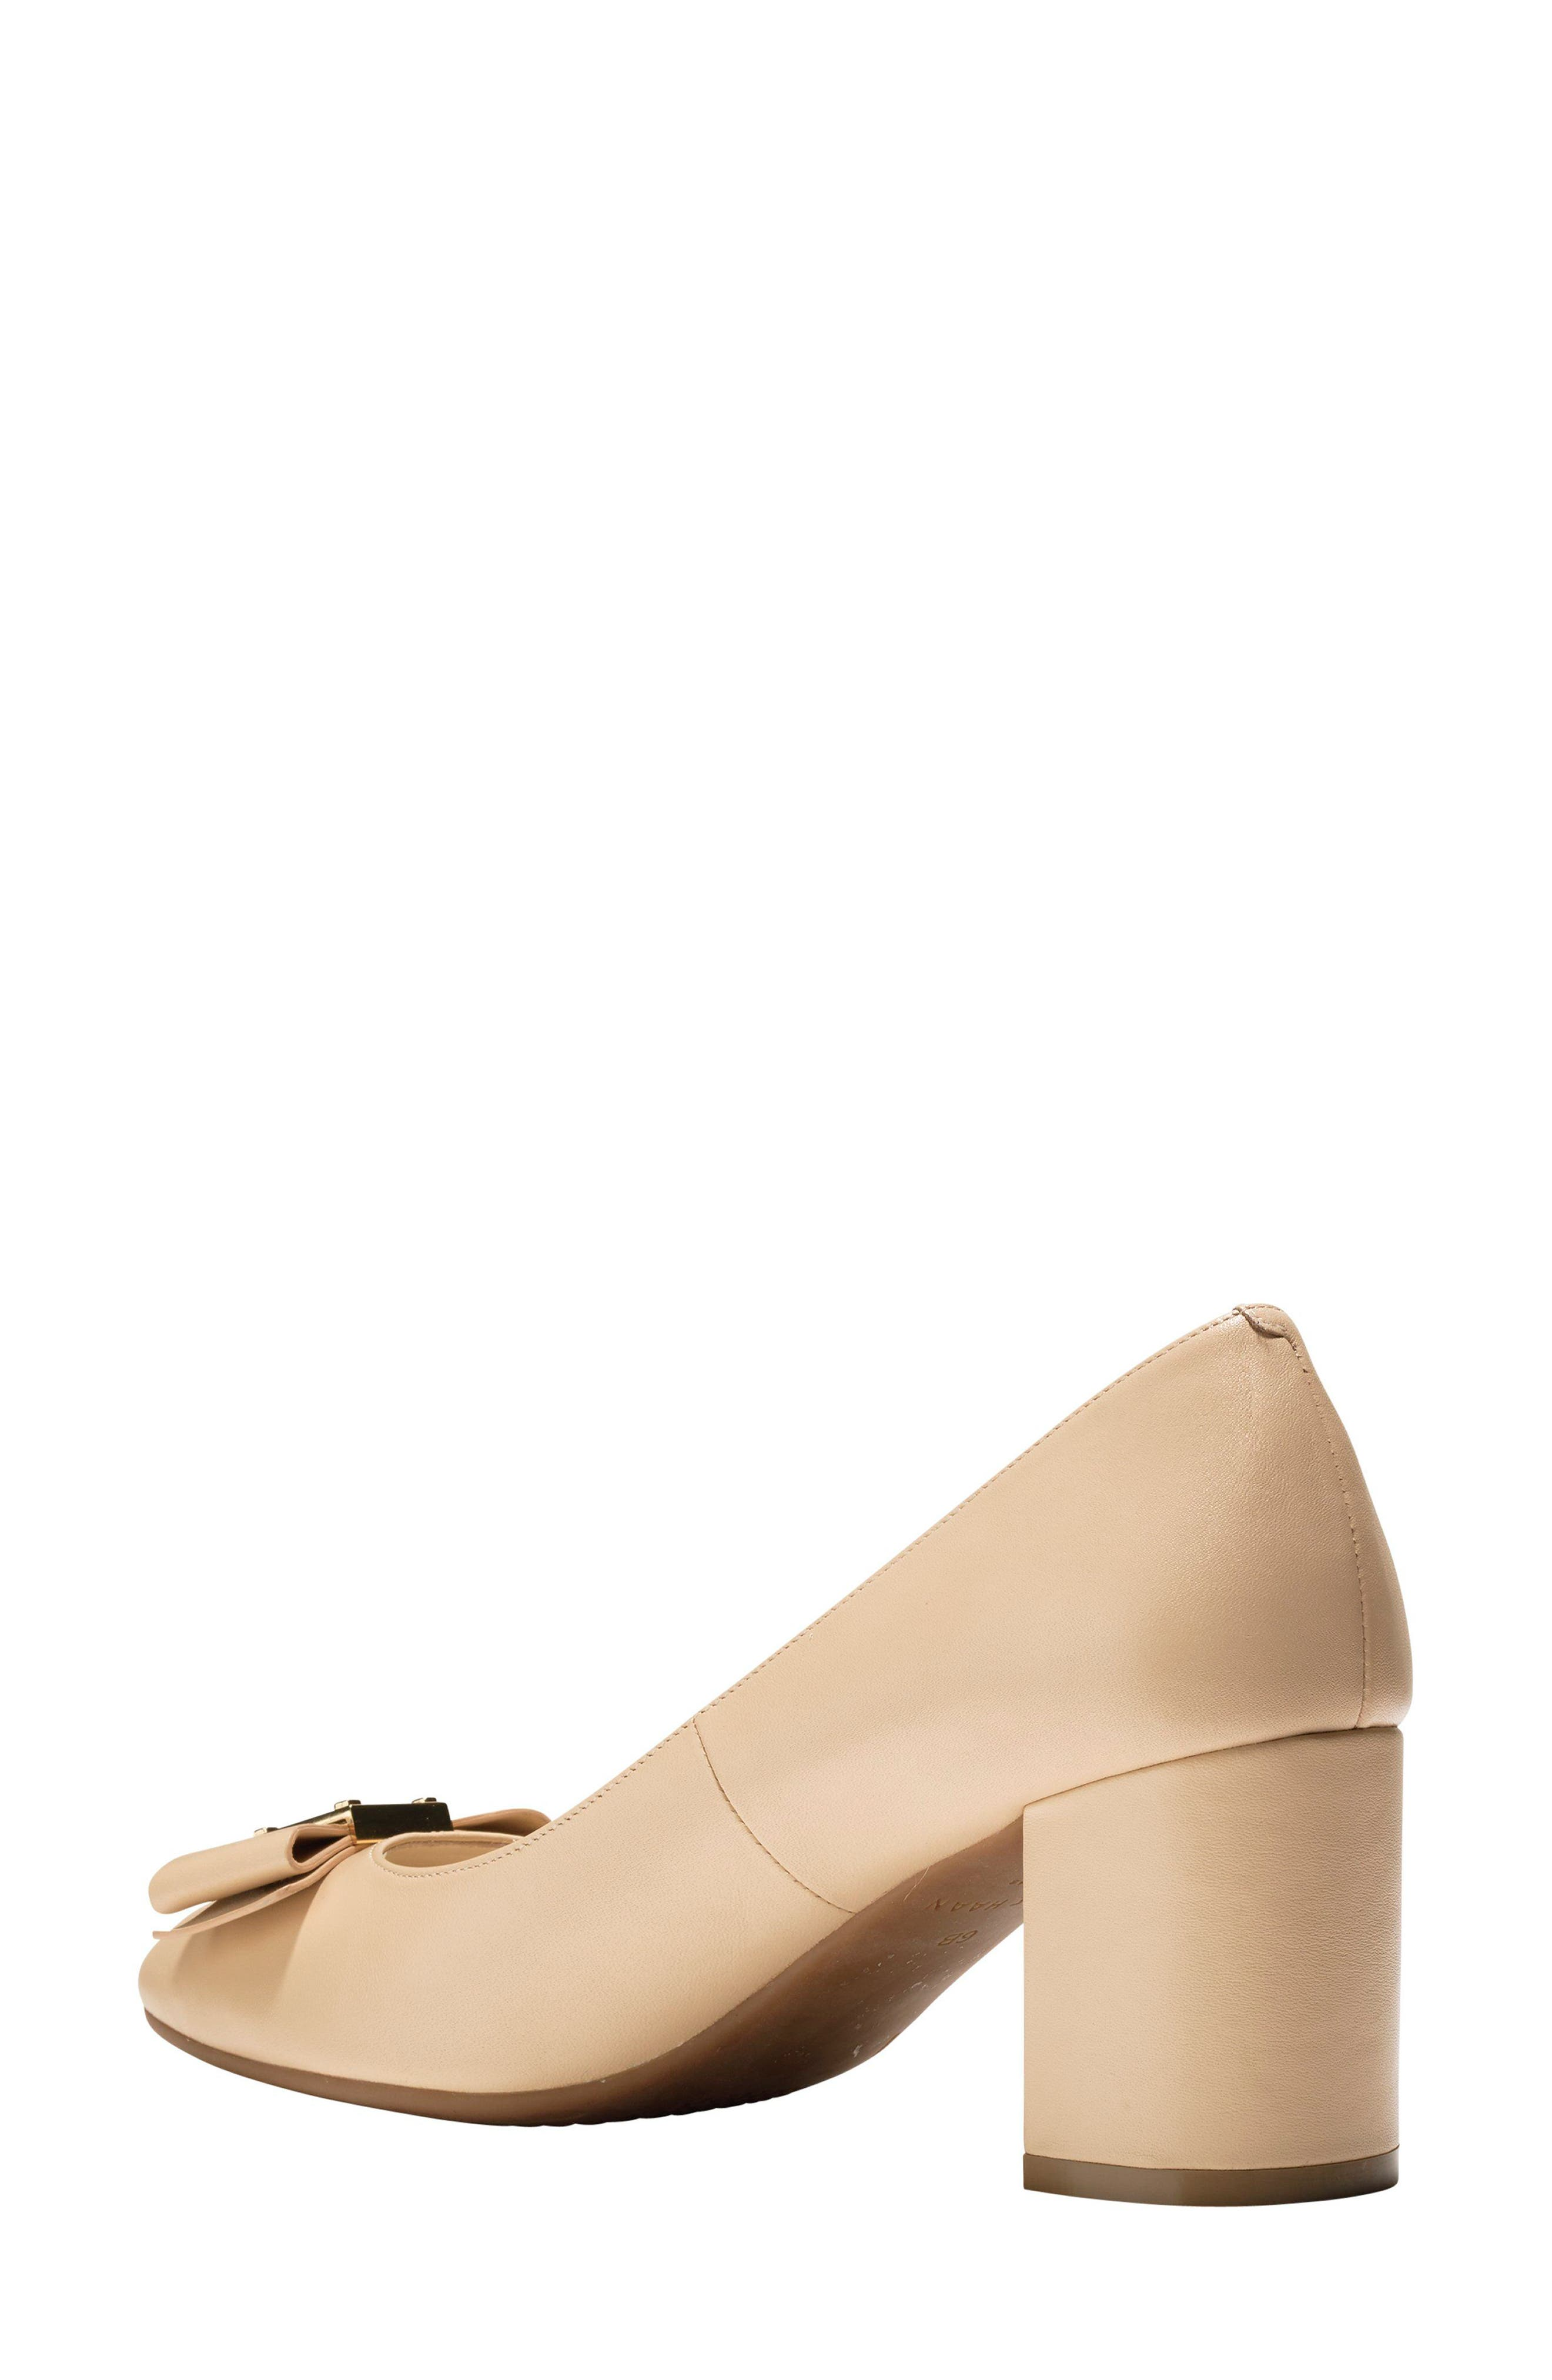 Tali Bow Pump,                             Alternate thumbnail 2, color,                             NUDE LEATHER